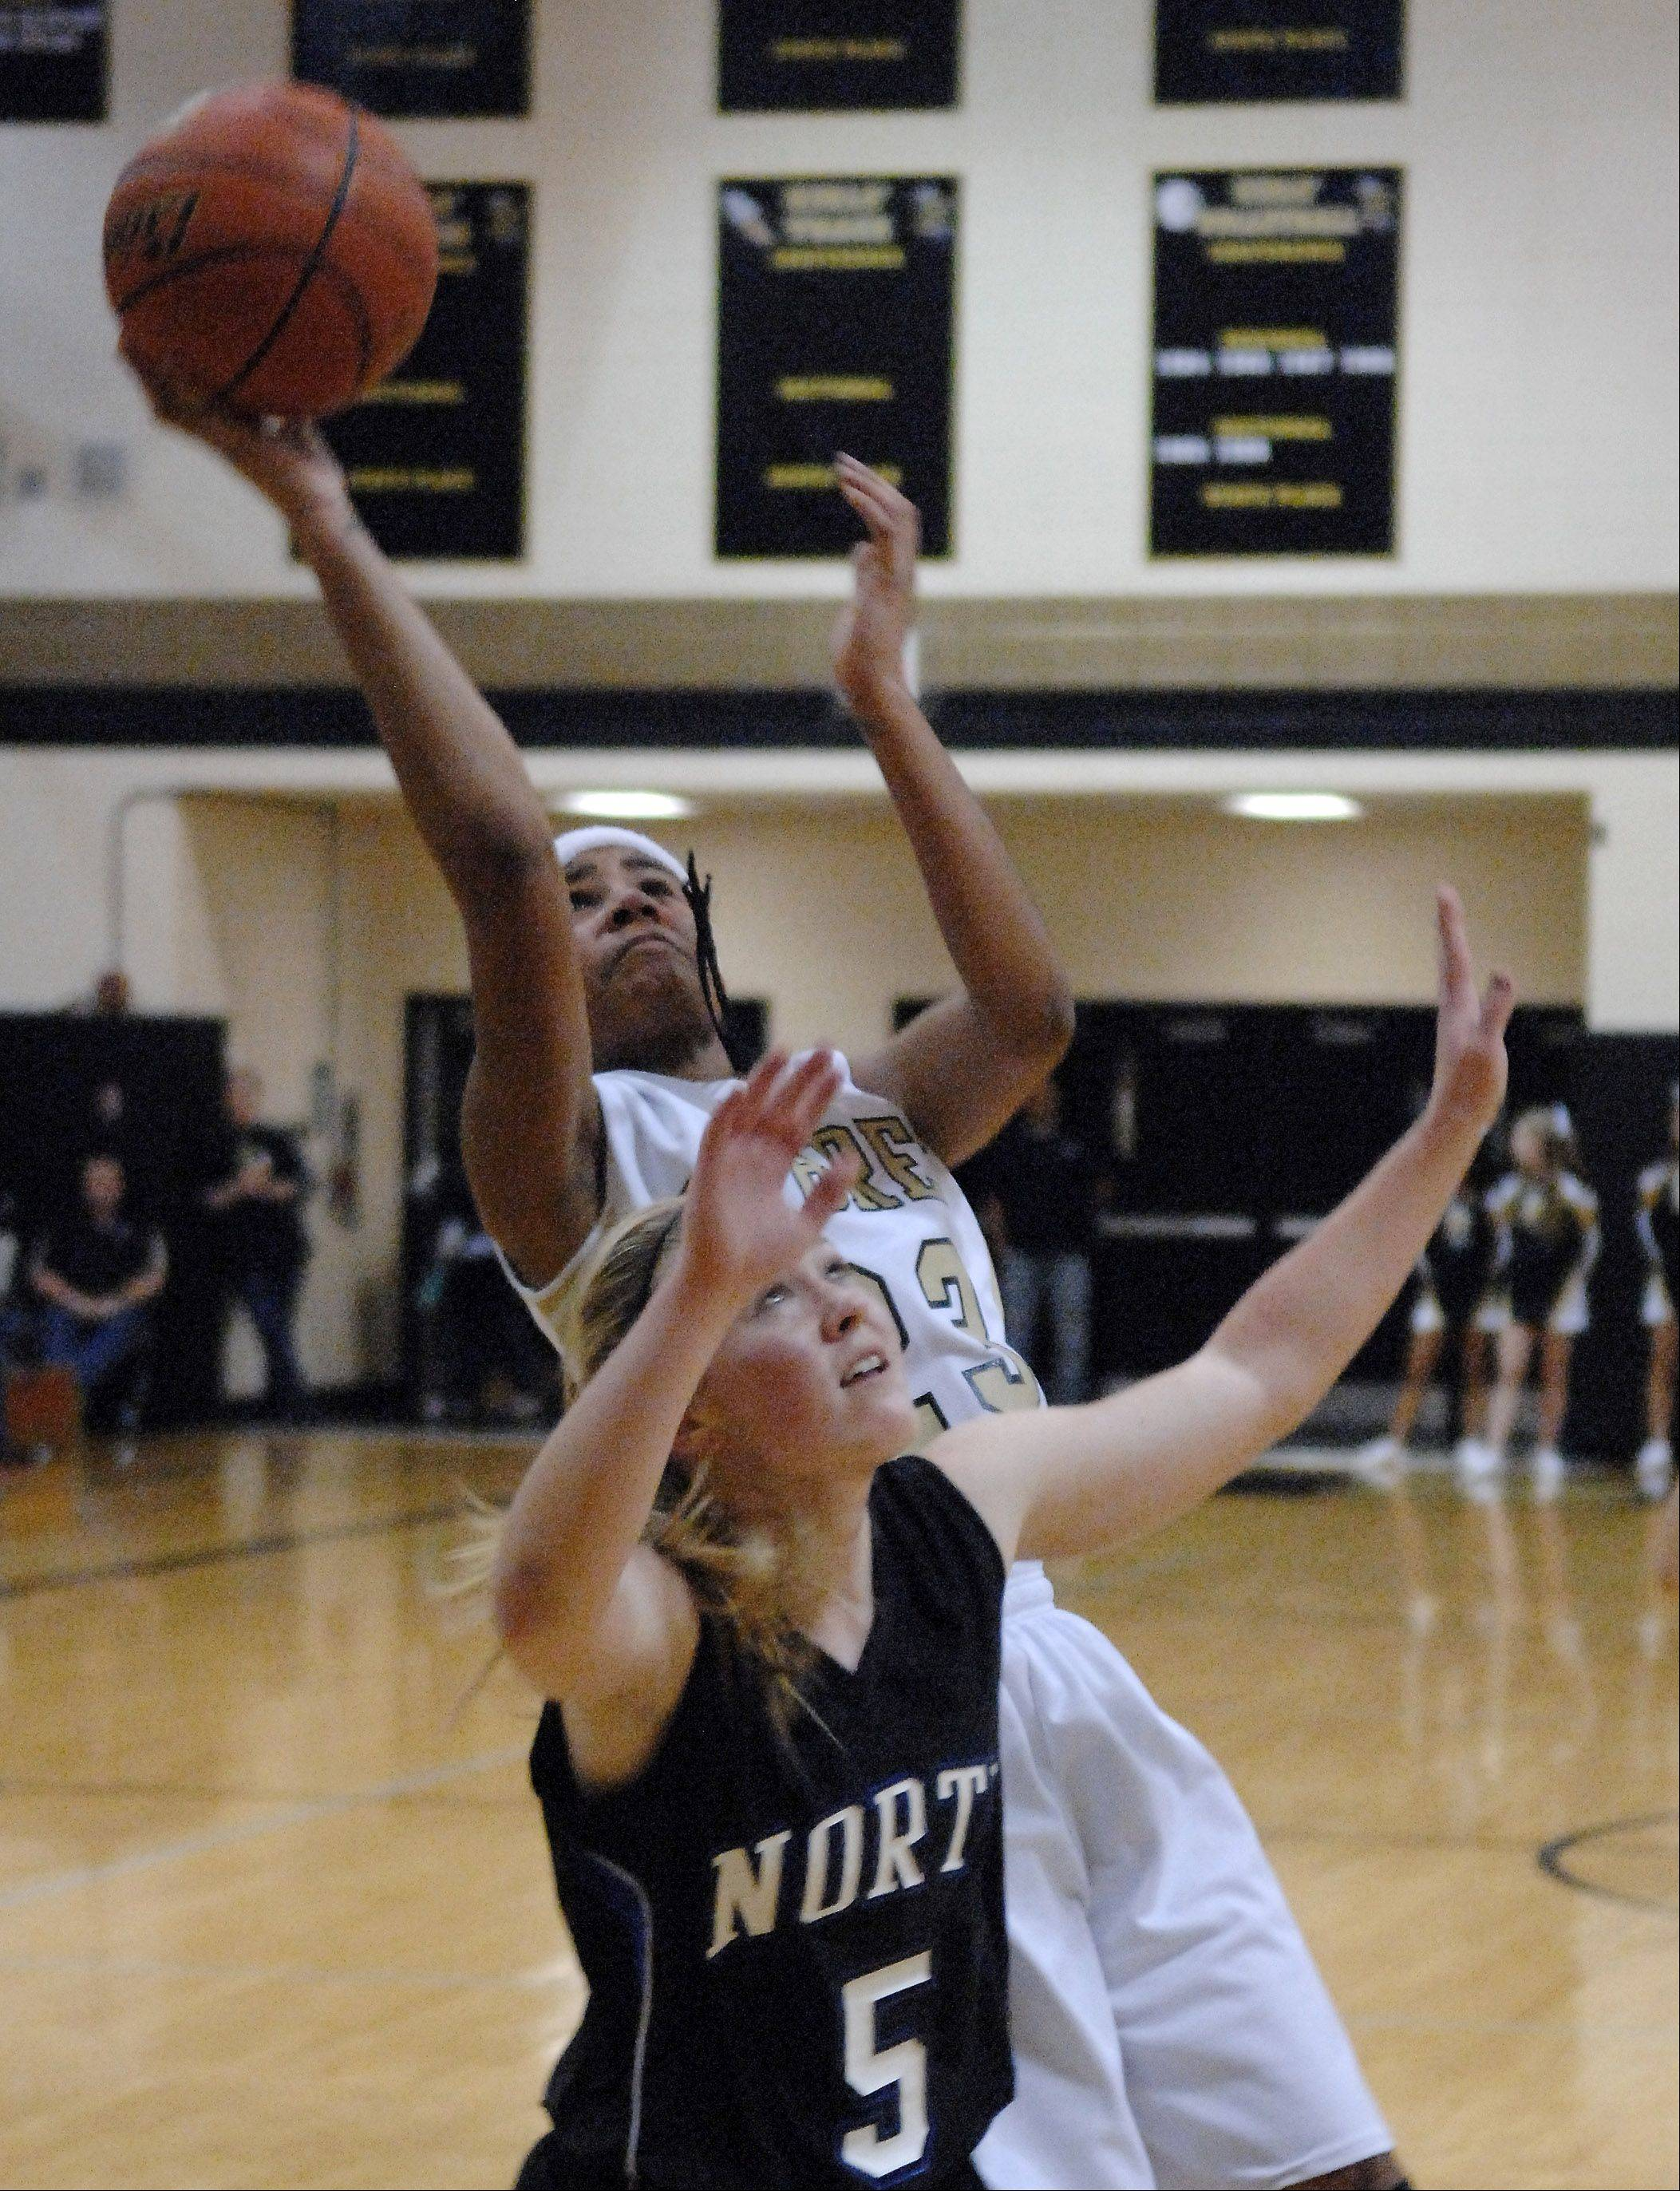 Streamwood's Deja Moore puts up a shot over St. Charles North's Natalie Winkates after grabbing an offensive rebound during Friday's game at Streamwood.